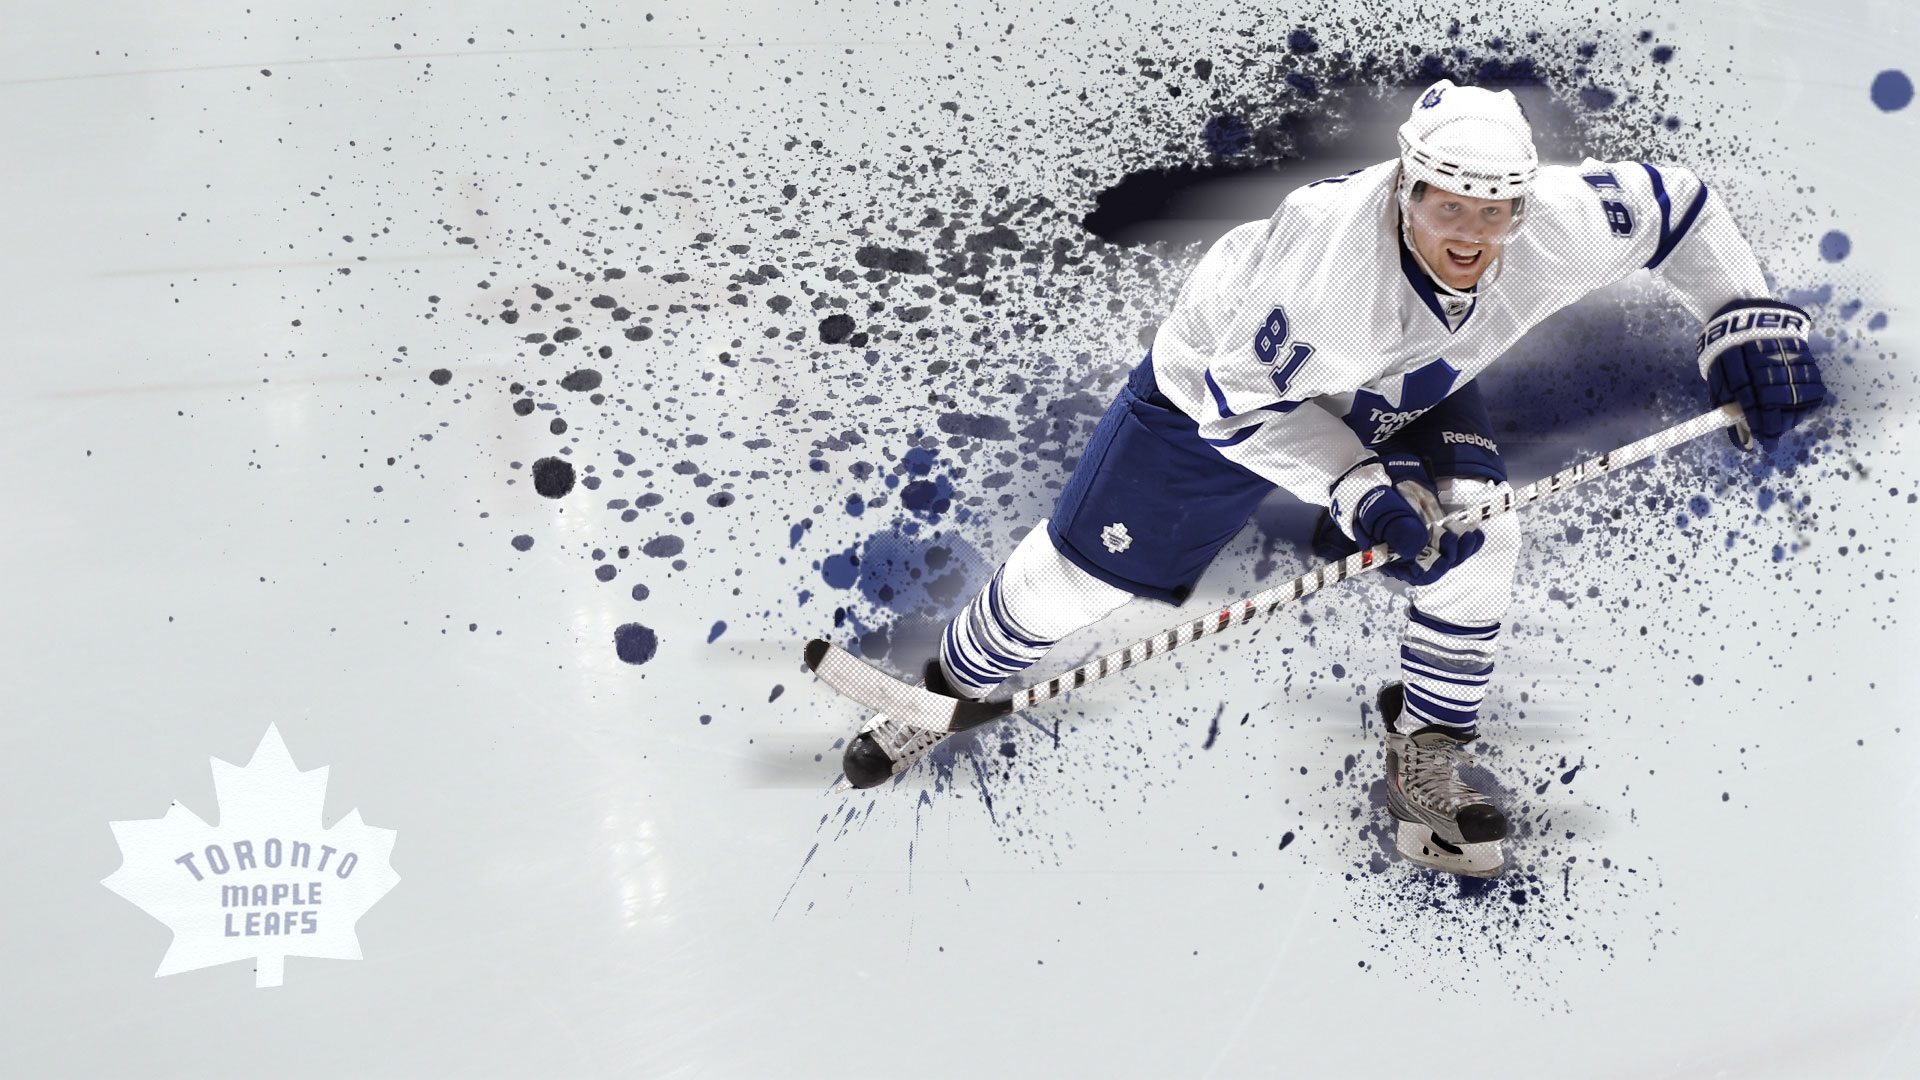 Wallpaper wallpaper NHL Wallpaper hd wallpaper background desktop 1920x1080